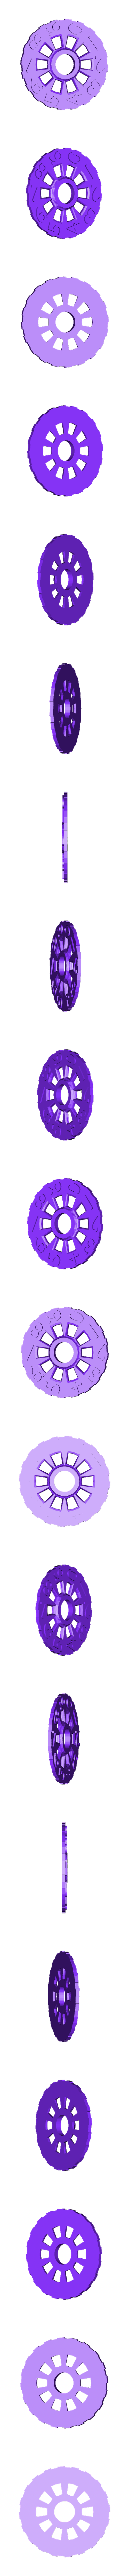 Flat_Counter_wheel-right.stl Download free STL file Flat life/score counter + keychain • 3D printing object, c47